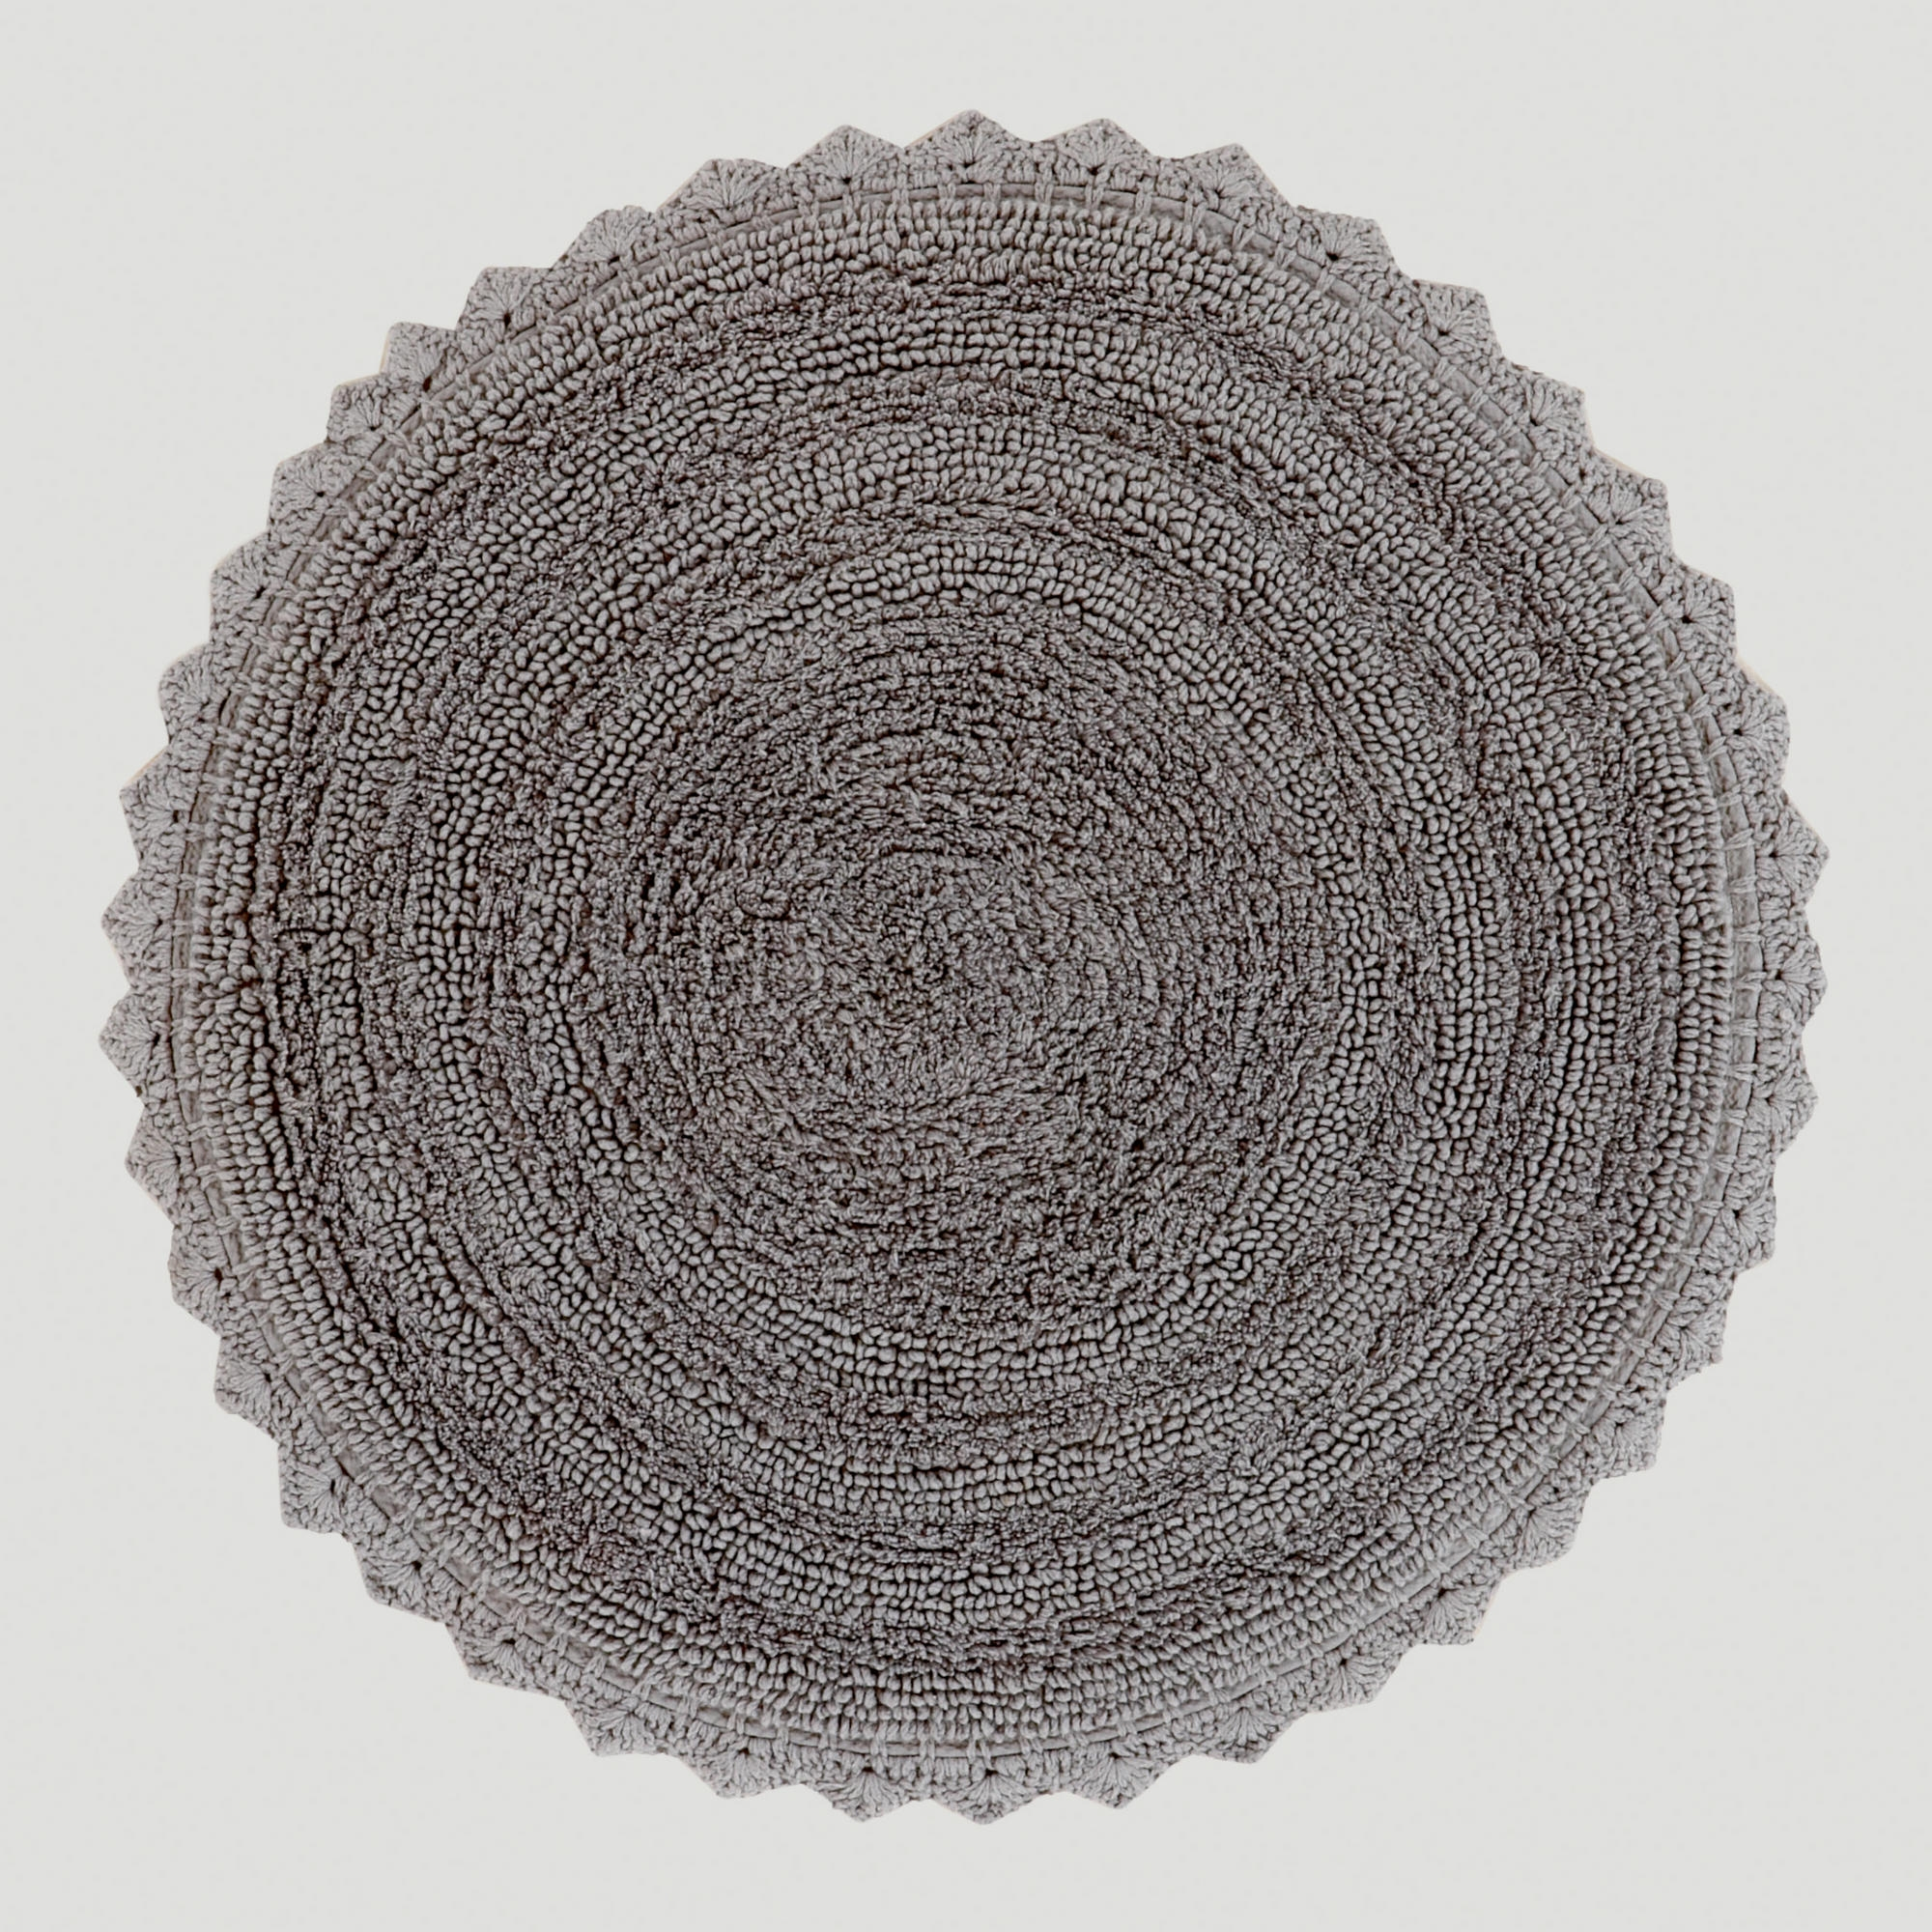 Permalink to Circular Bathroom Rugs